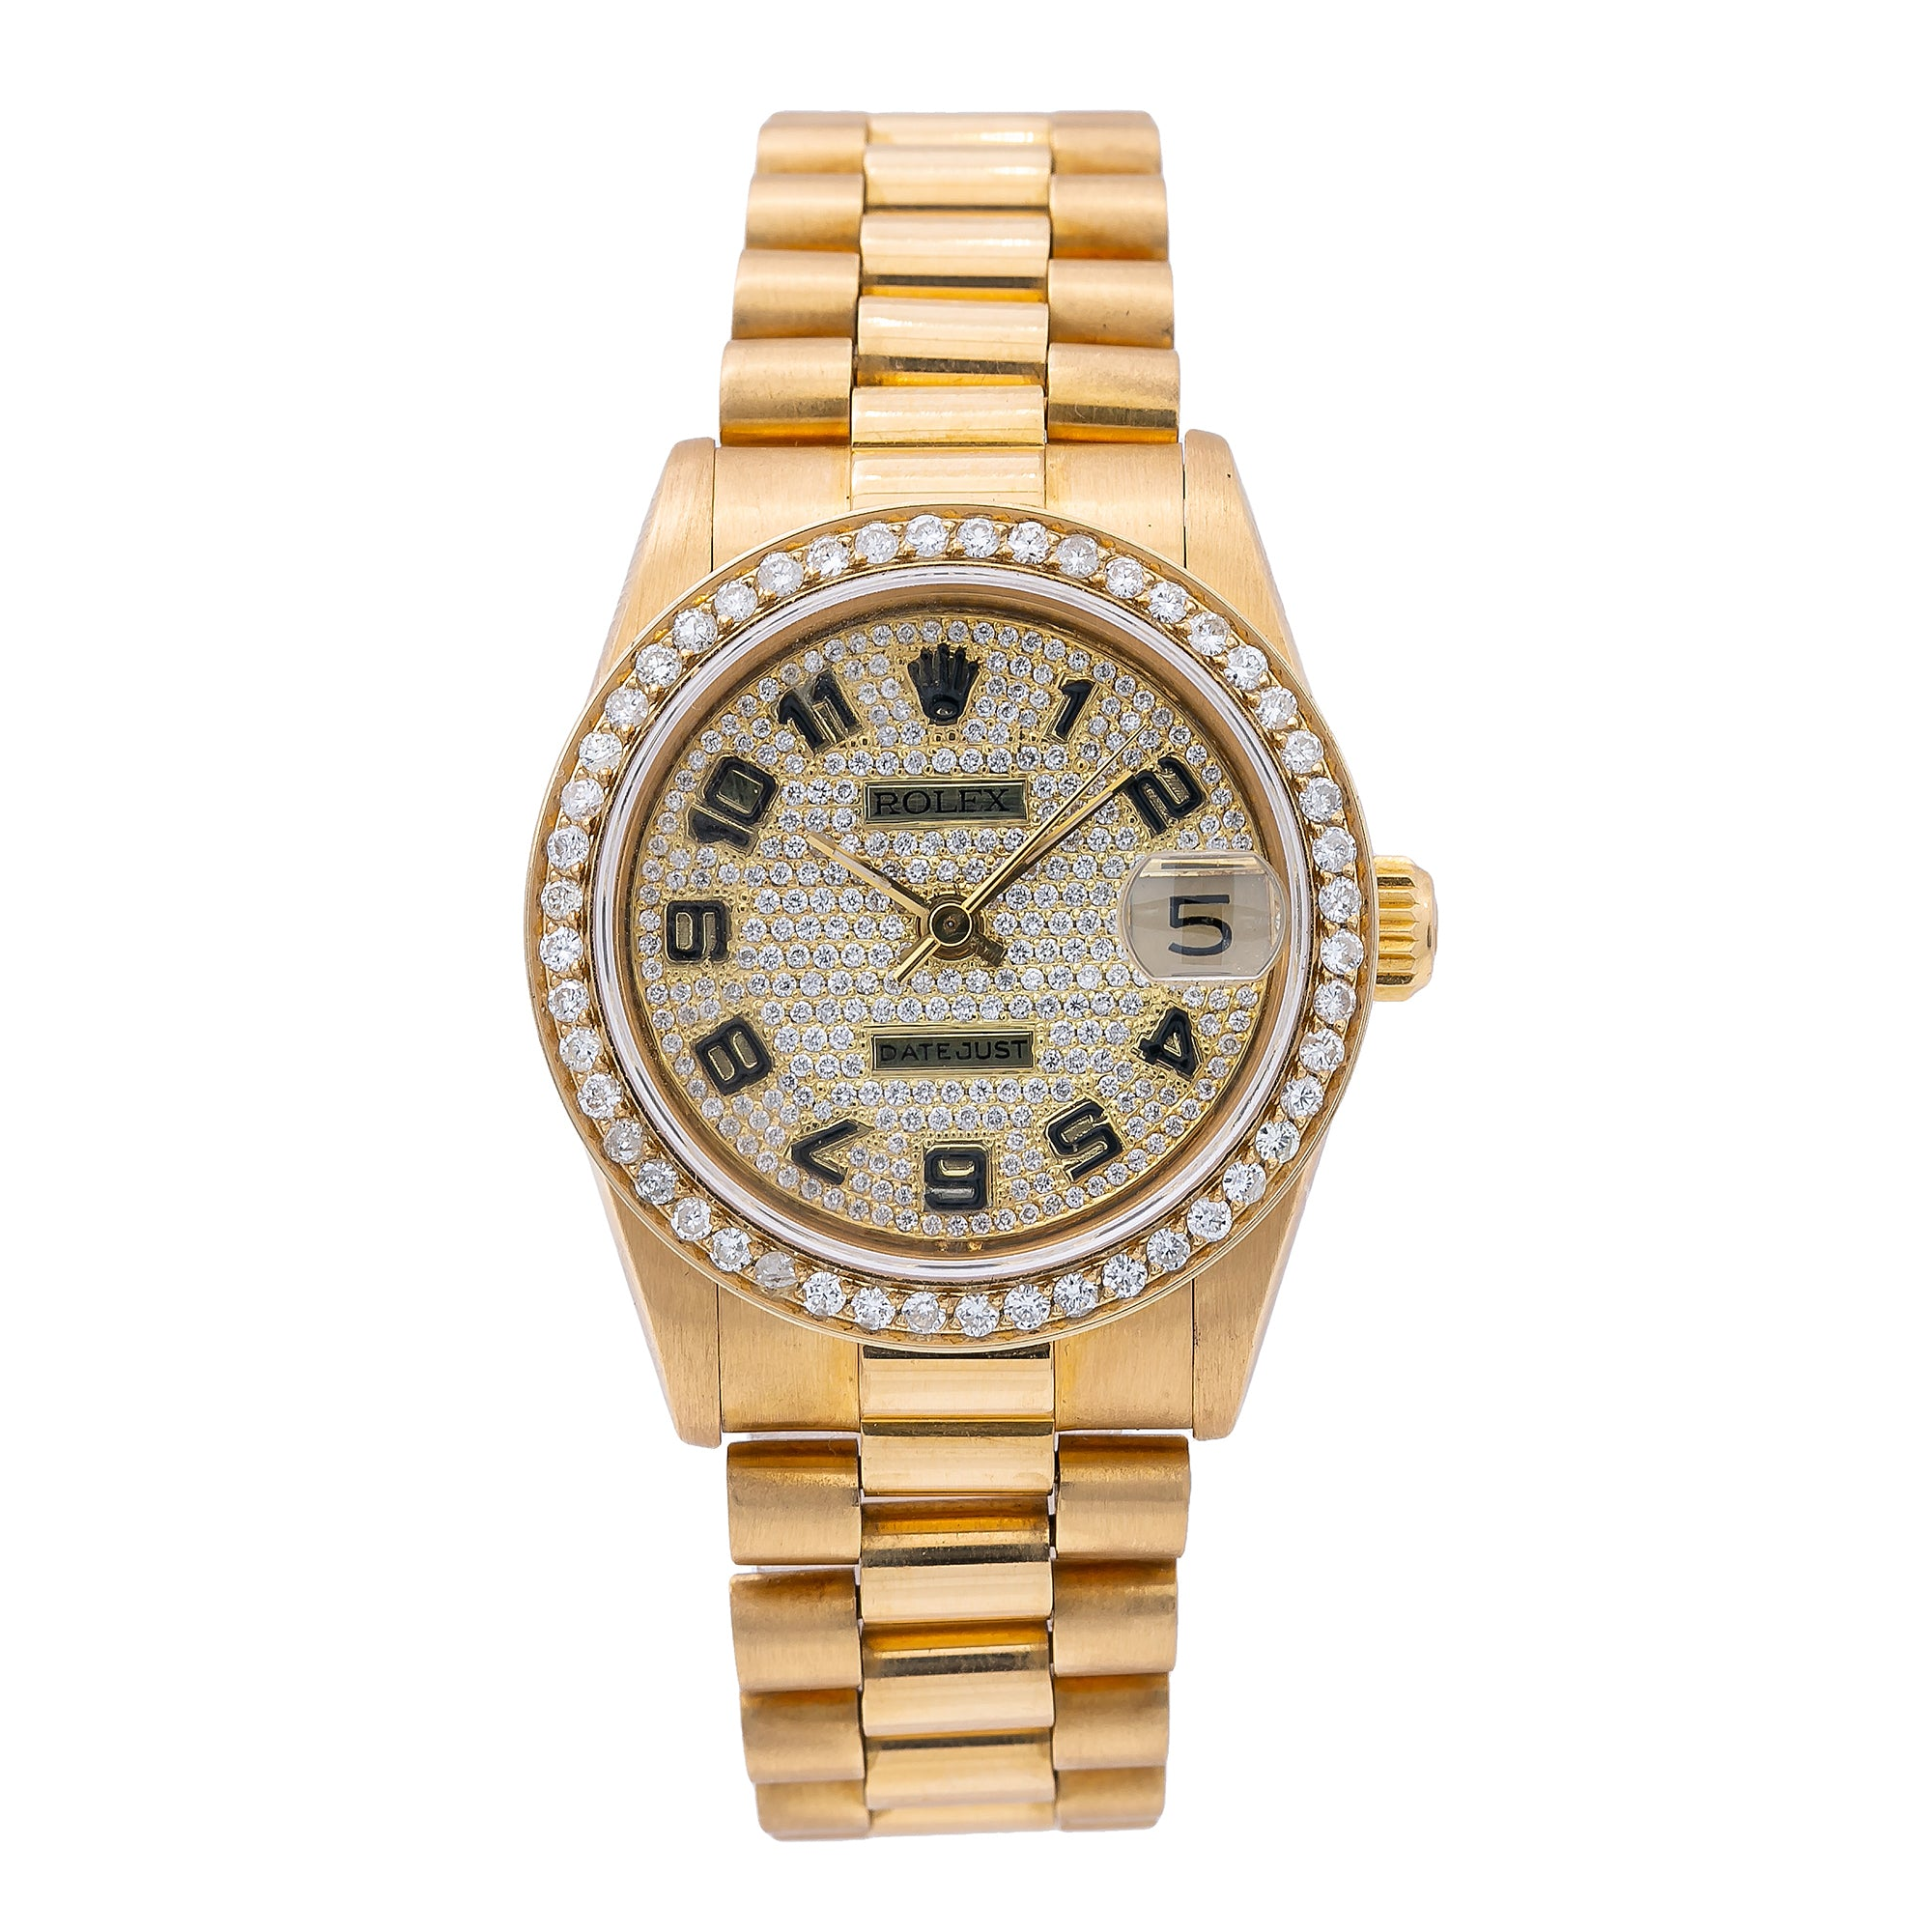 Rolex Datejust 68278 31MM Yellow Gold Diamond Dial With 2.50 CT Diamonds